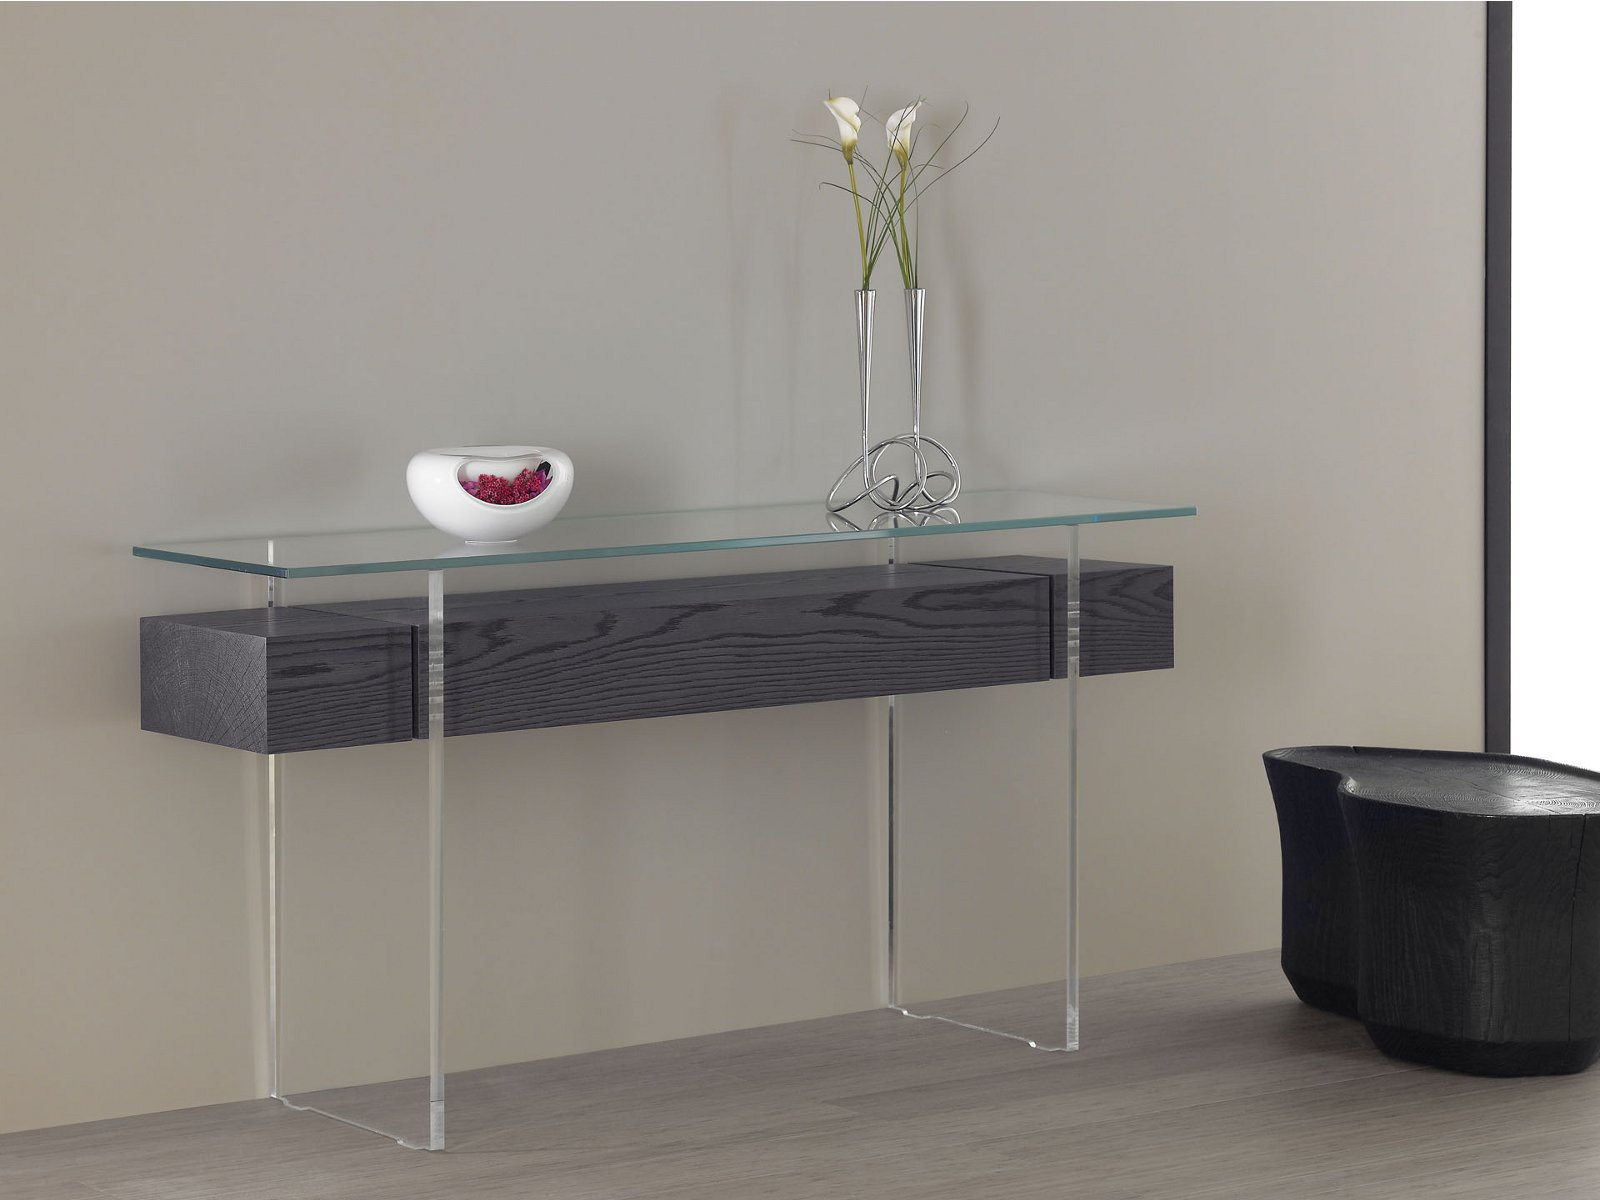 Smos table console by la maison turrini design erwan peron - La table console ...